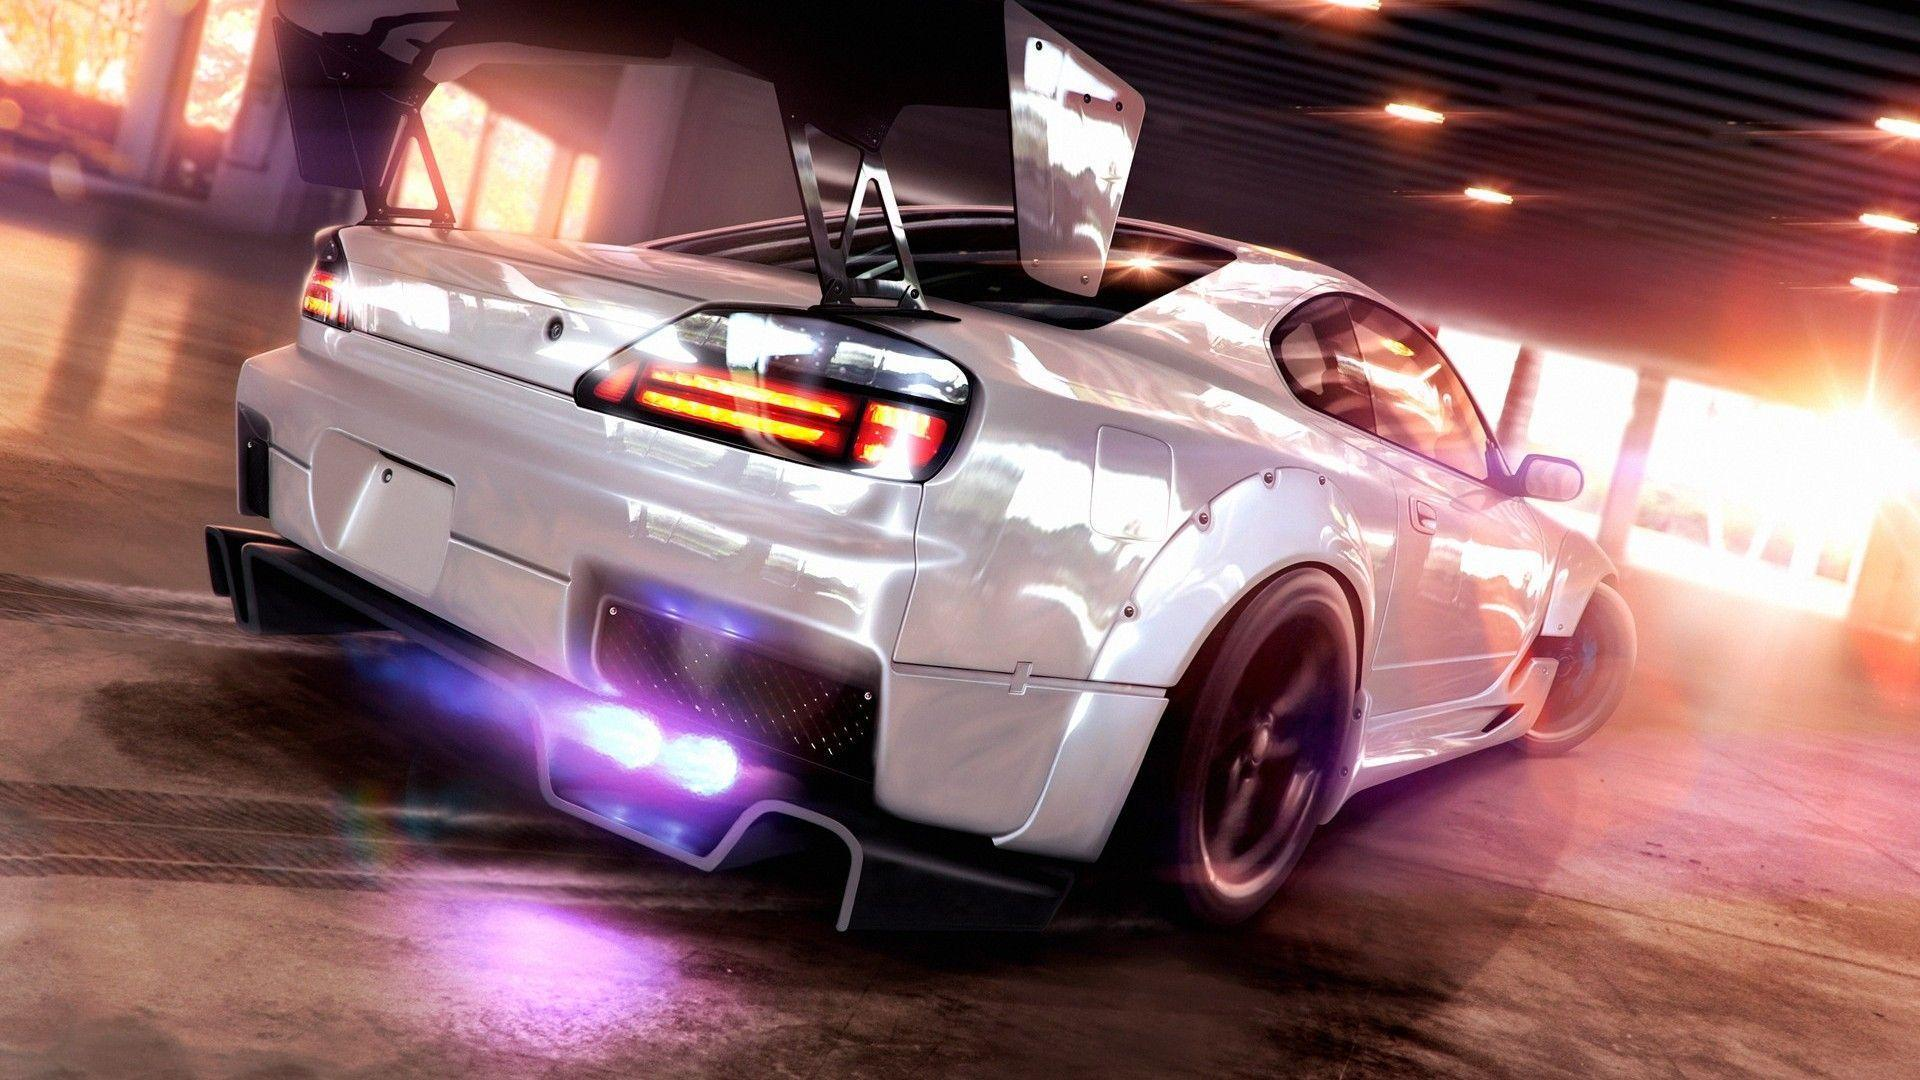 Need For Speed Wallpaper White Car Download Fr #3440 Wallpaper ...